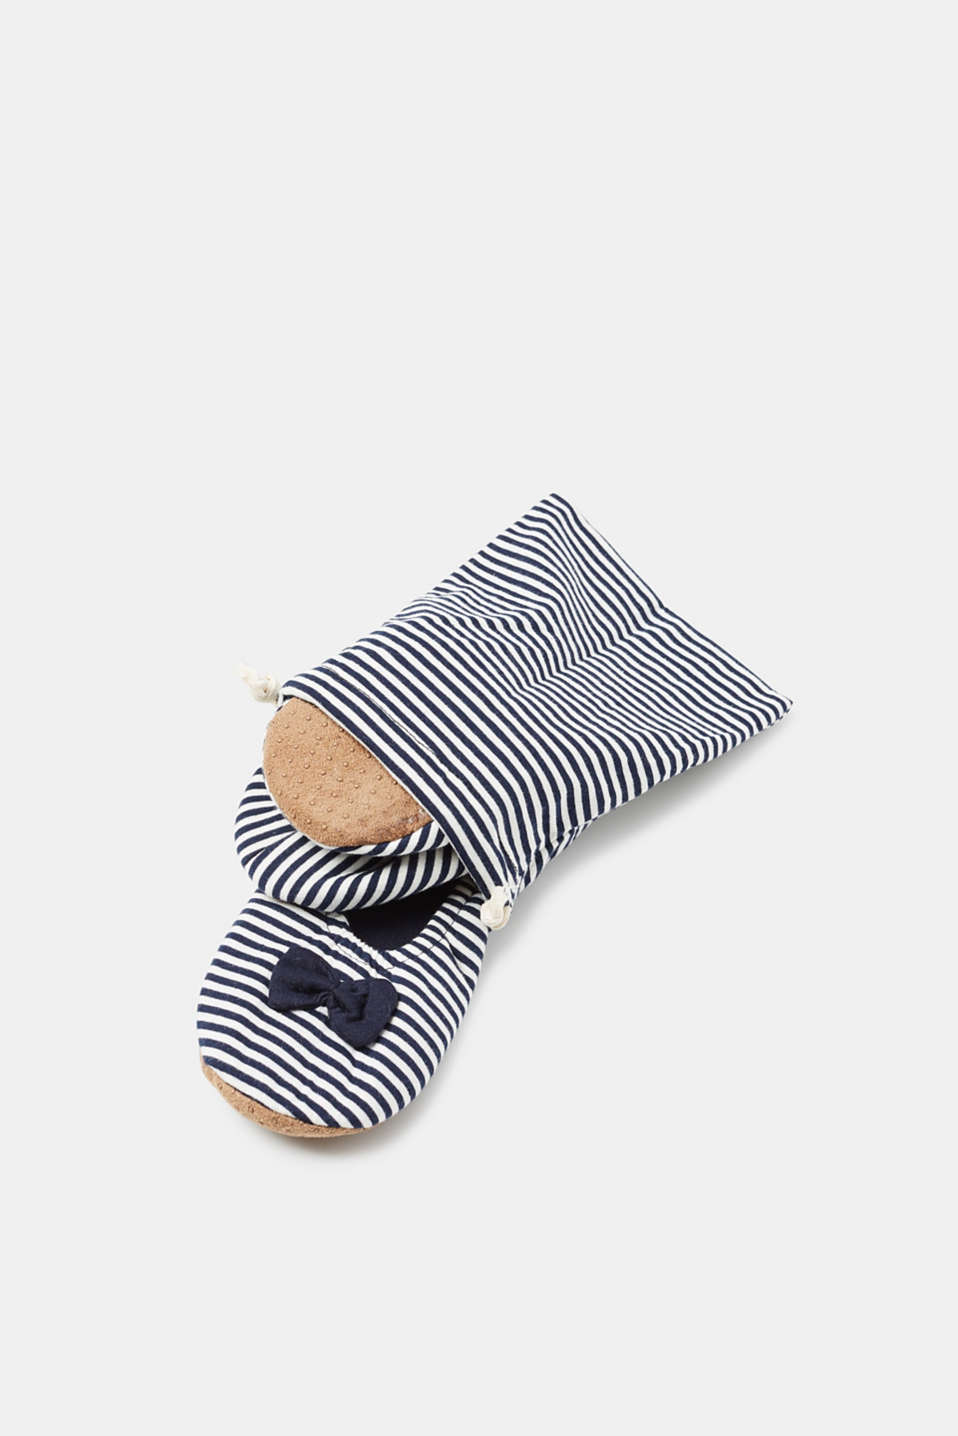 Slipper socks with stripes and bows